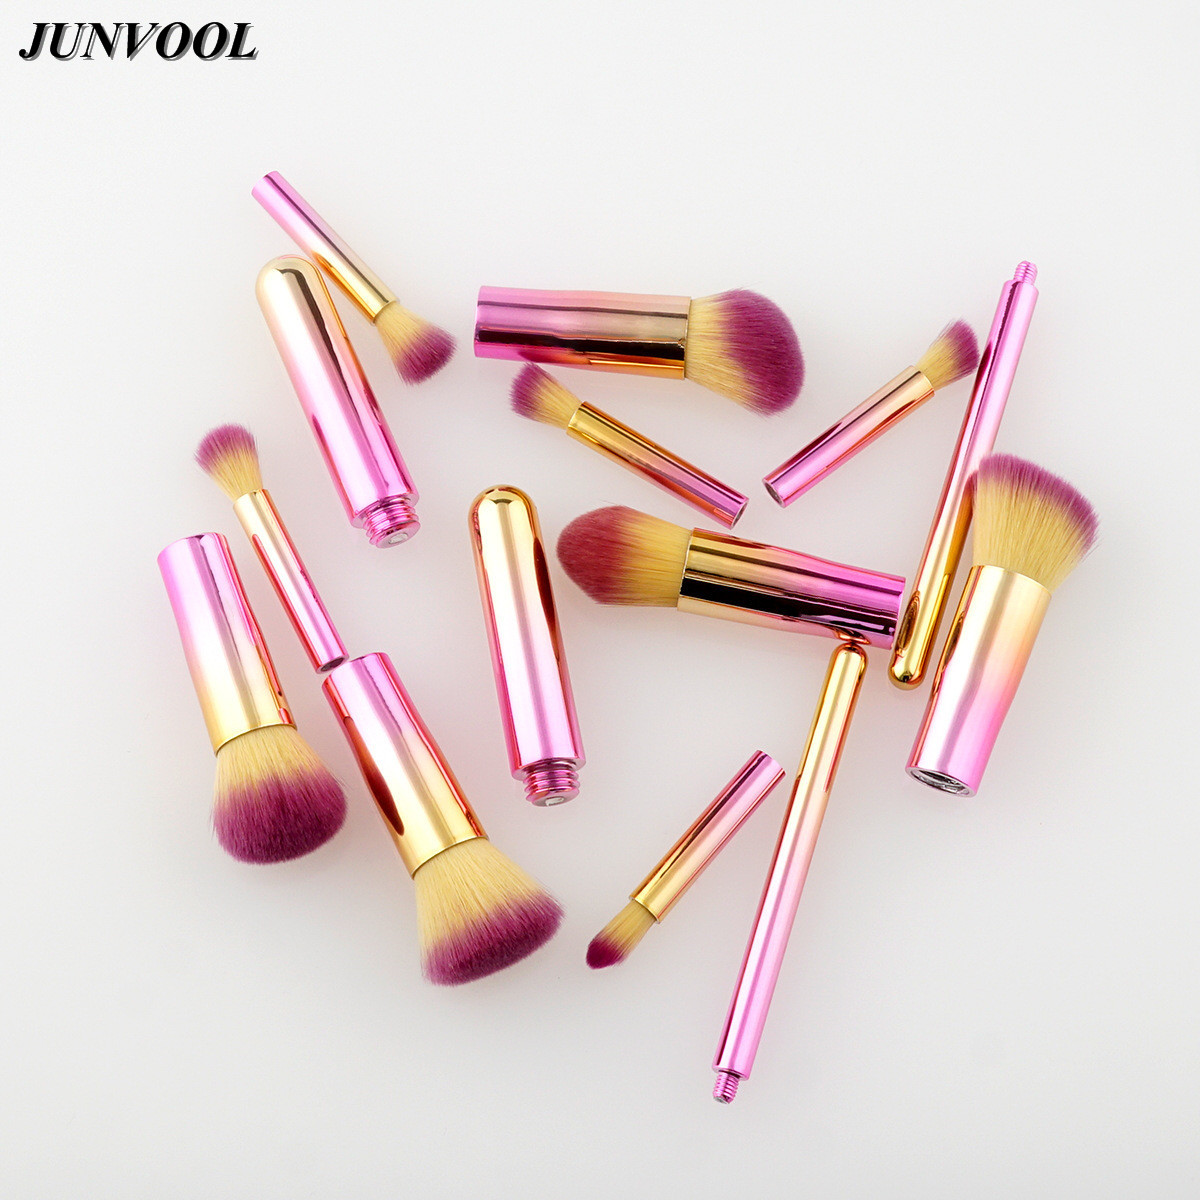 Golden Pink 10Pcs Make Up Brushes Set Detachable Foundation Face&Eye Powder Blusher Professional Cosmetic Makeup Brush Maquiagem 4 pcs golden professional makeup brushes waistline sculpting brush set cosmetic tool maquiagem accessories with original box